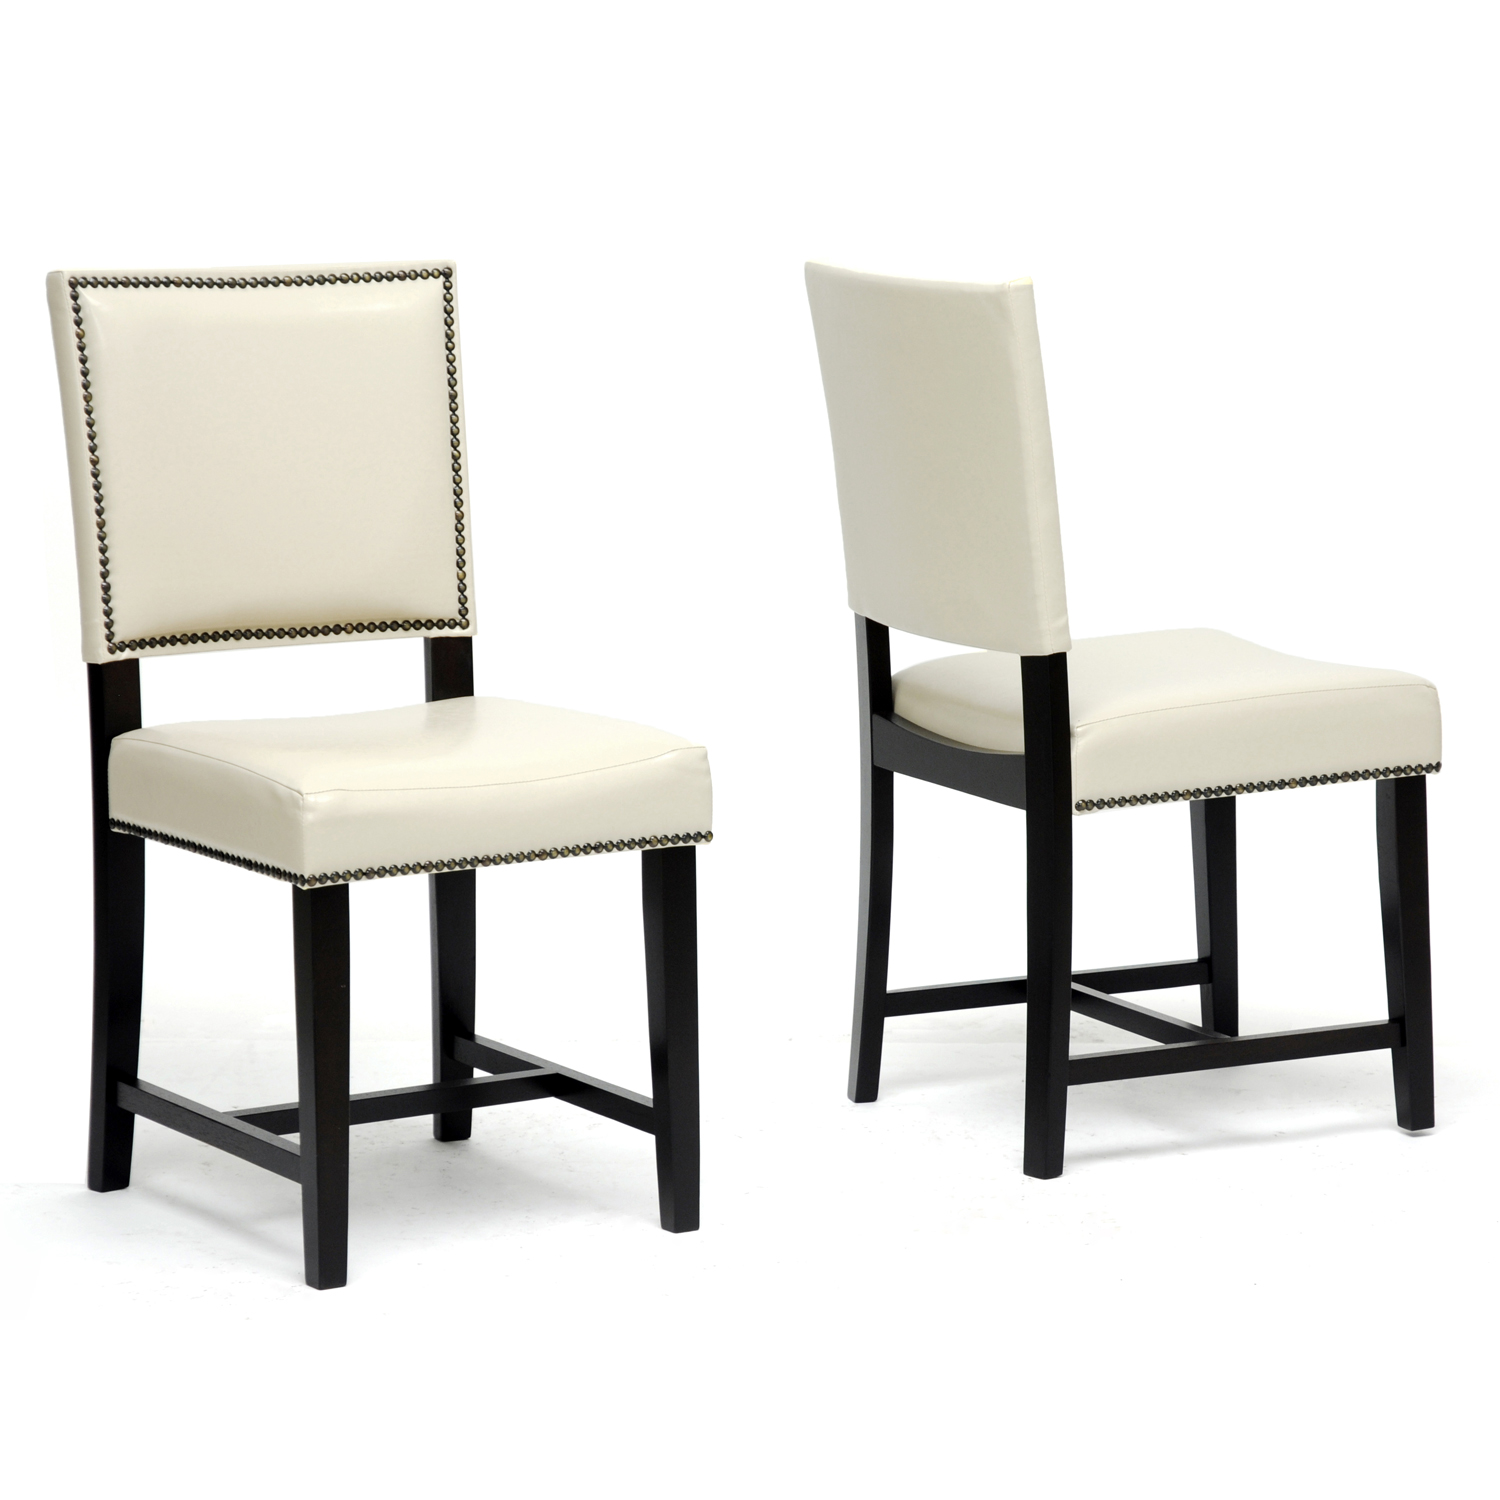 Modern wood chair with arms - Upholstered Dining Chairs Dining Room Sets With Fabric Chairs For